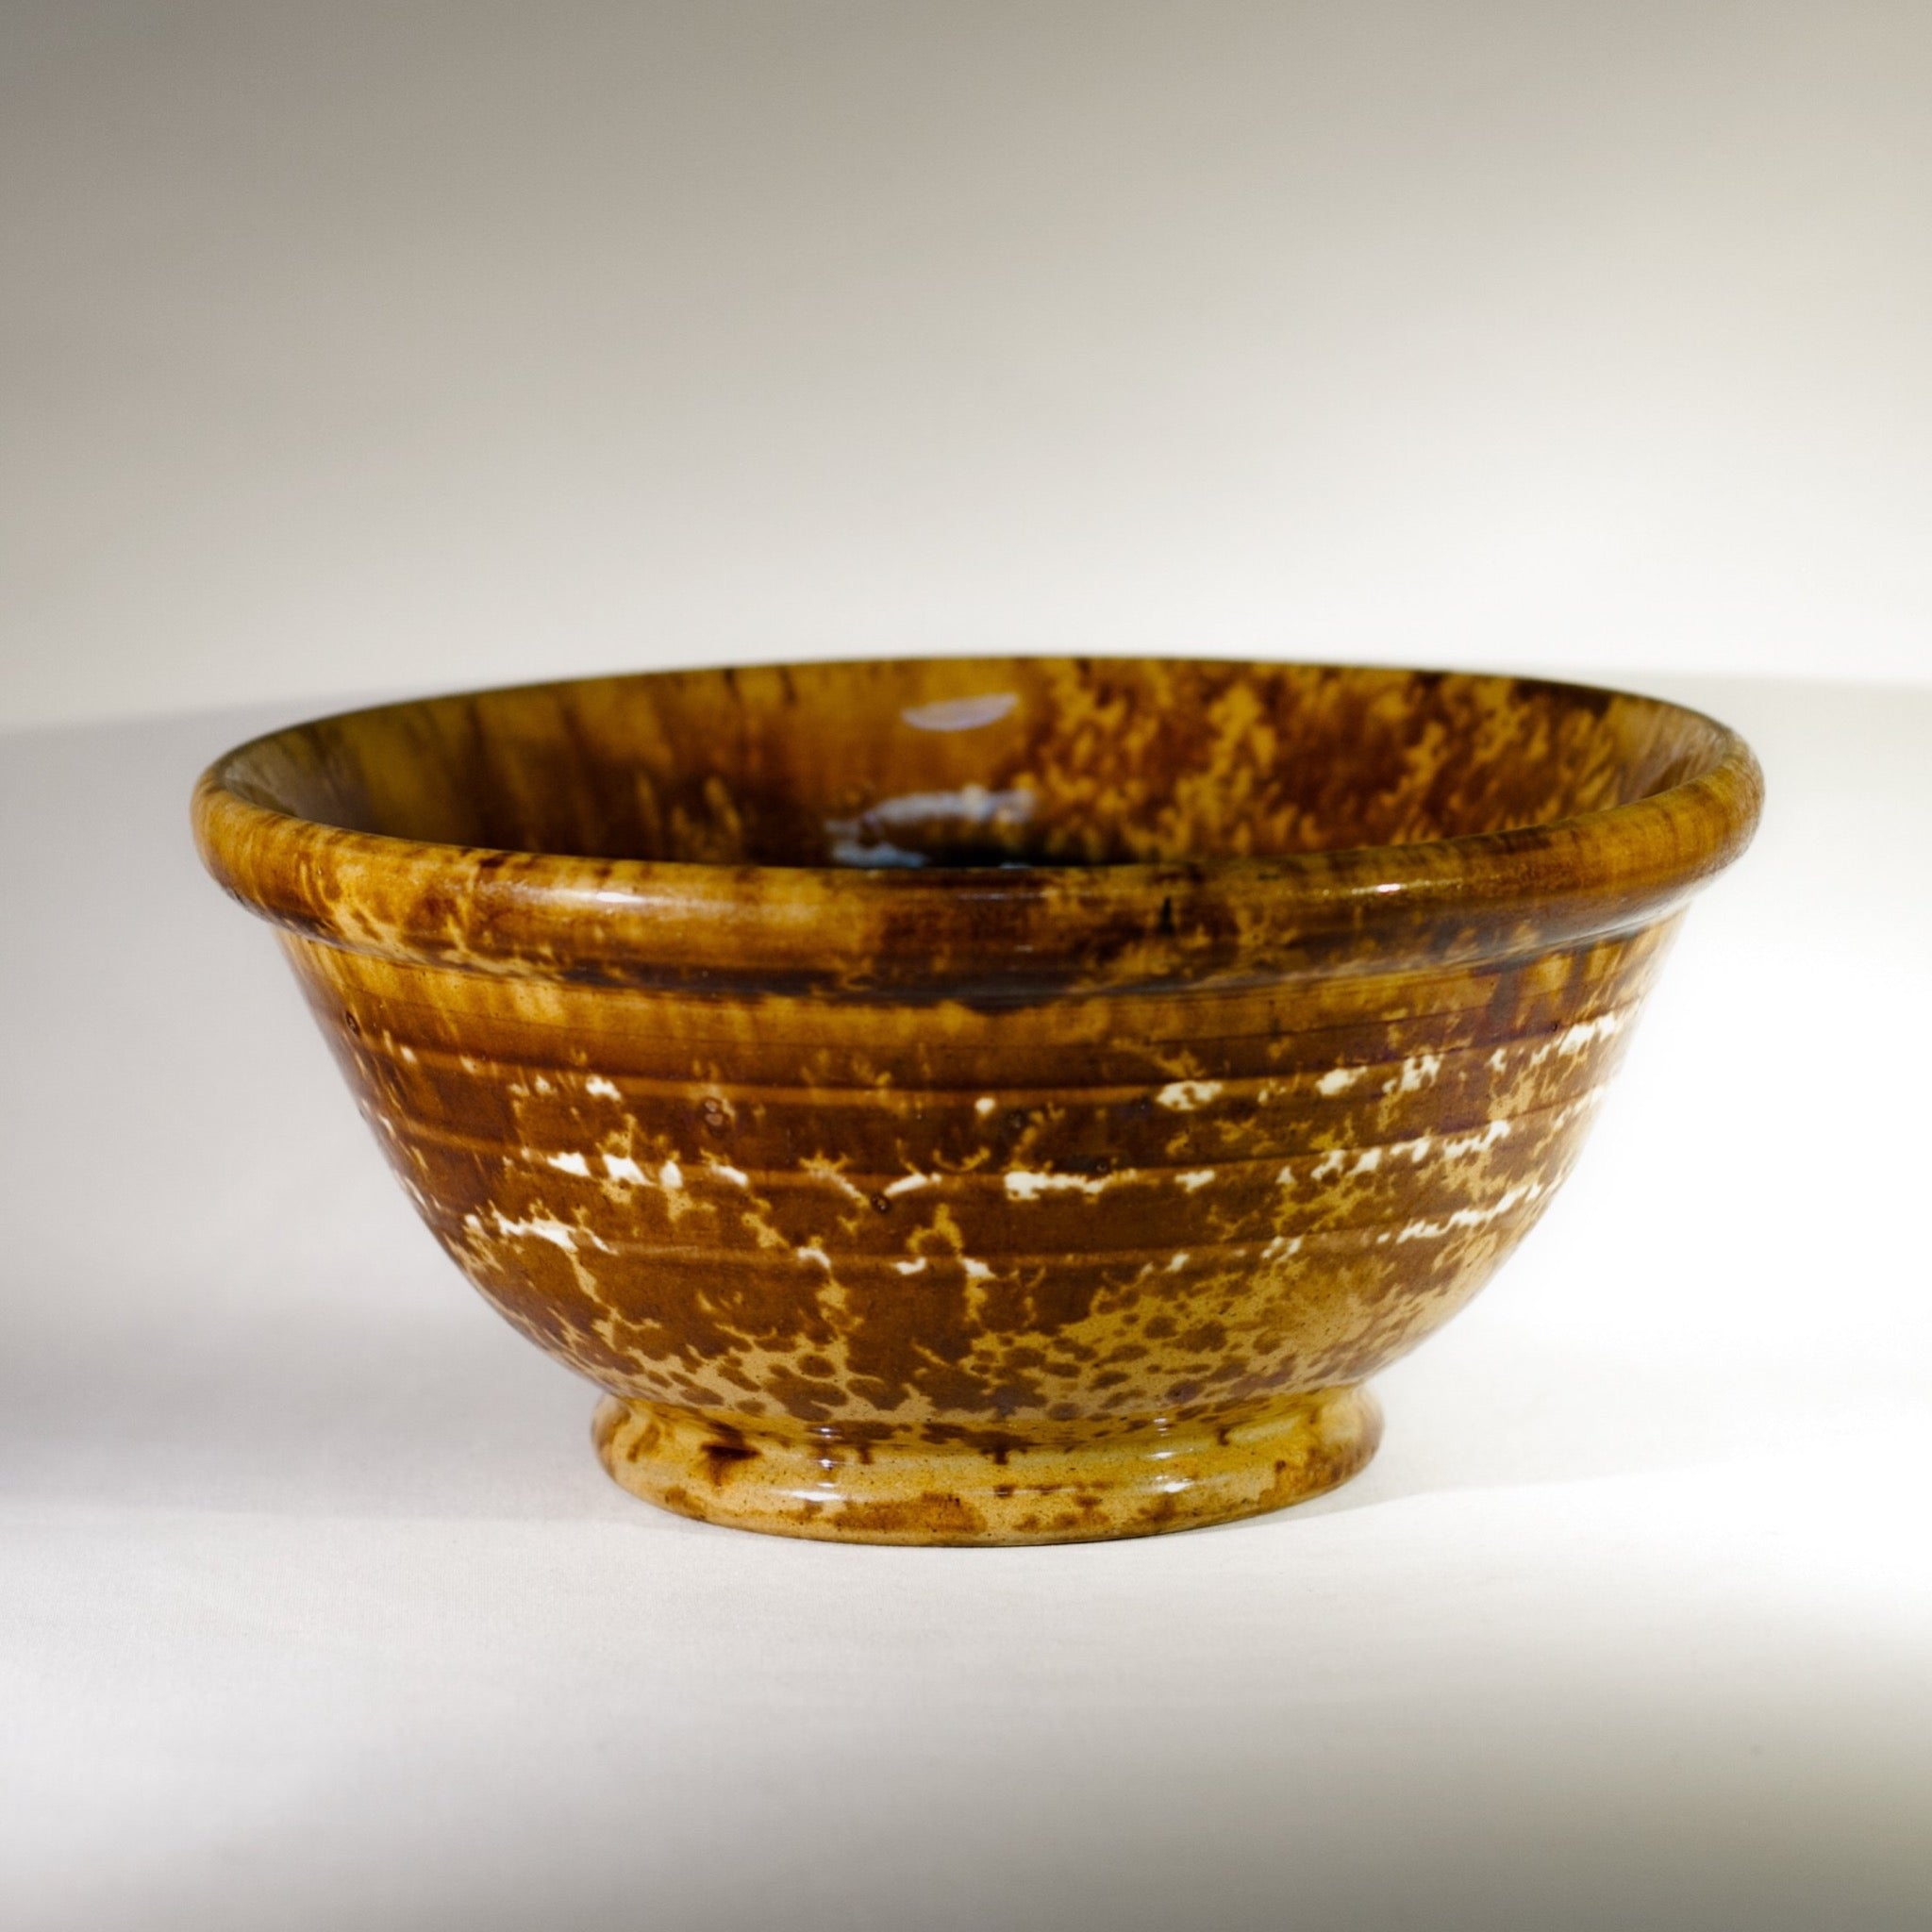 Antique SLIP BANDED AMERICAN ROCKINGHAM BOWL Circa 1880 - 1910